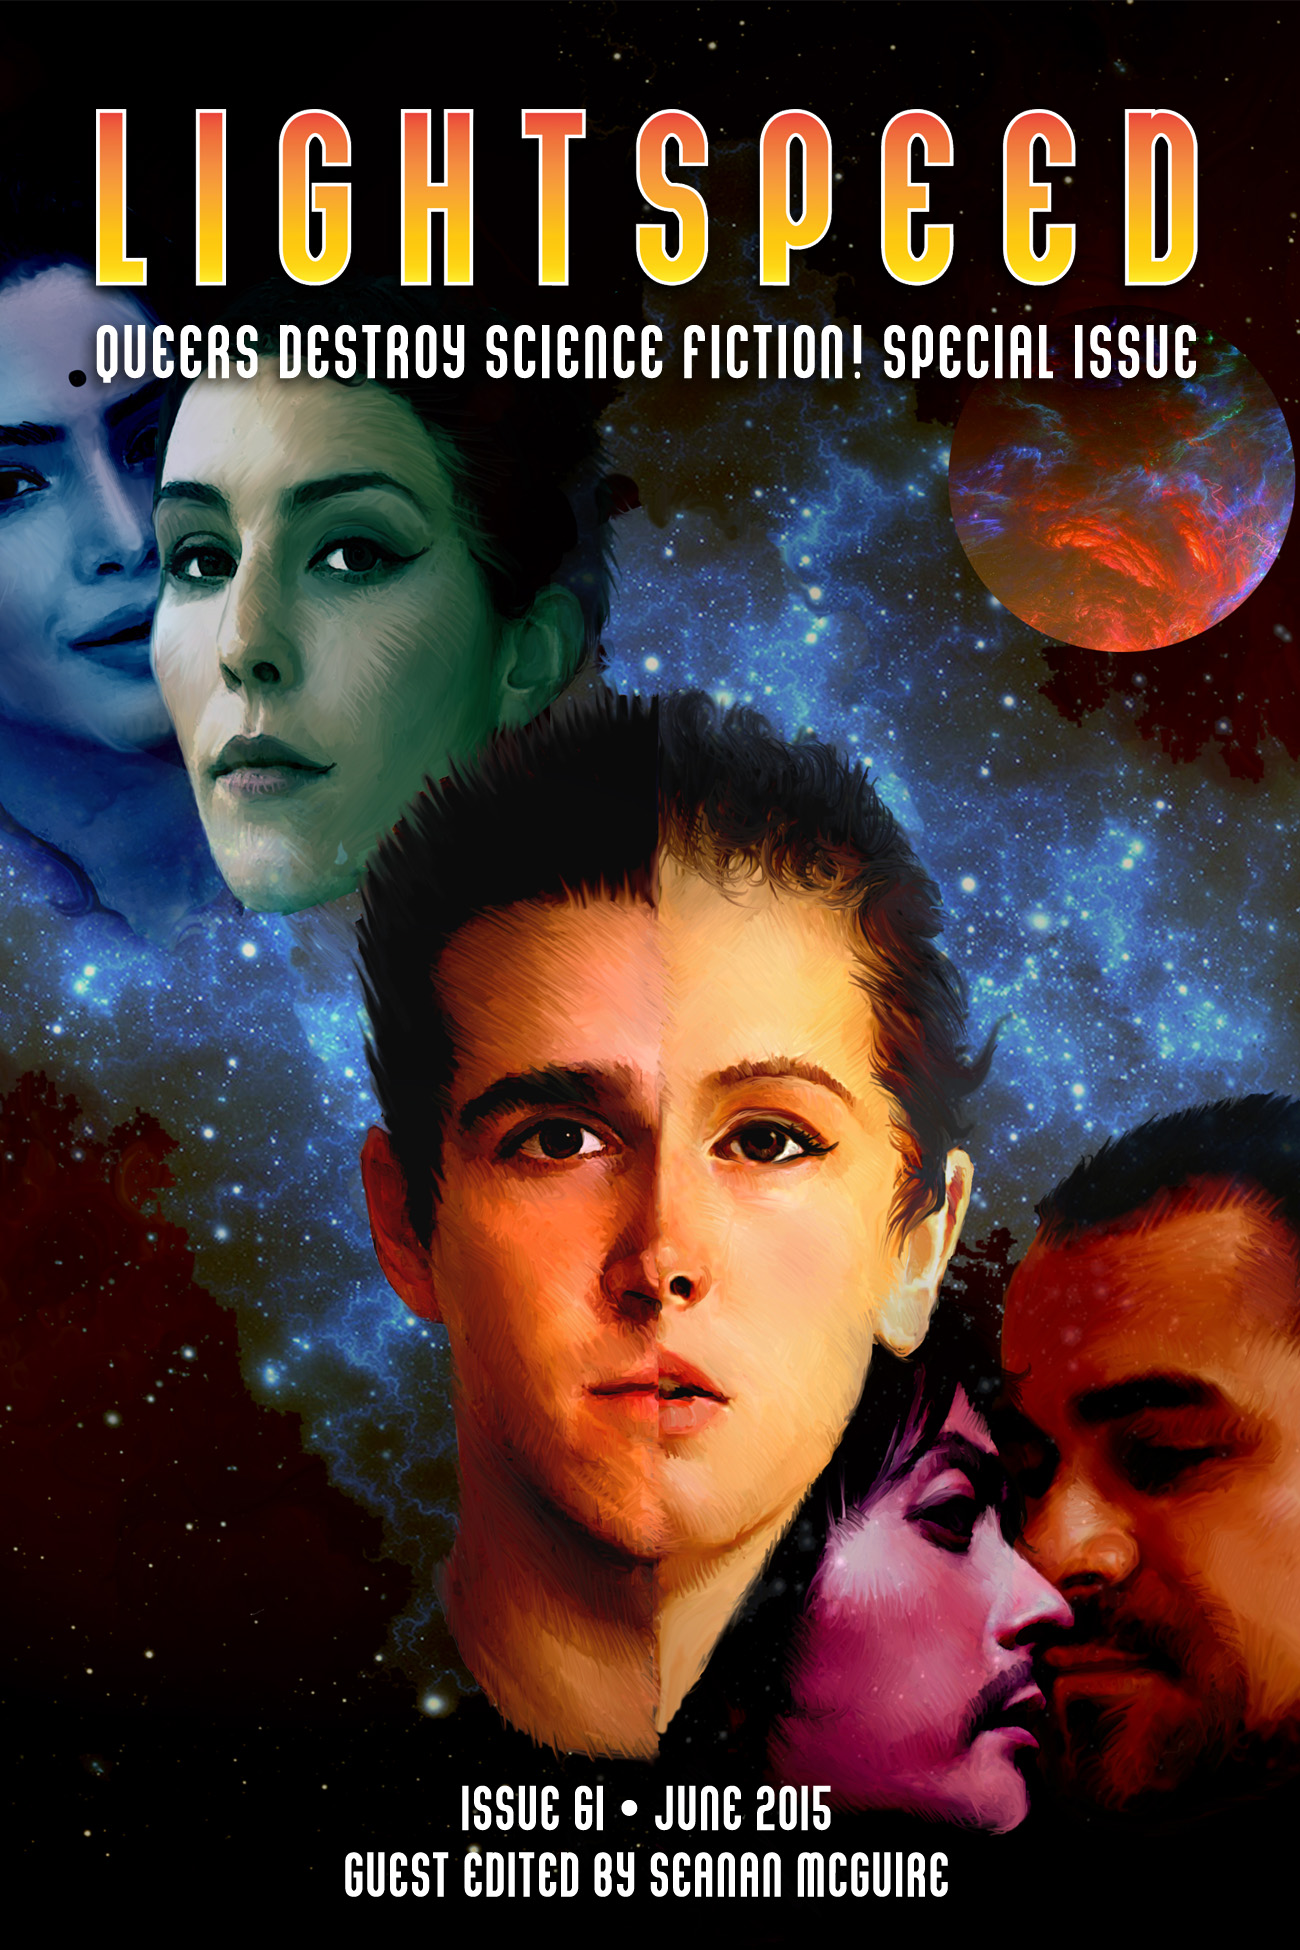 Lightspeed queers destroy science fiction